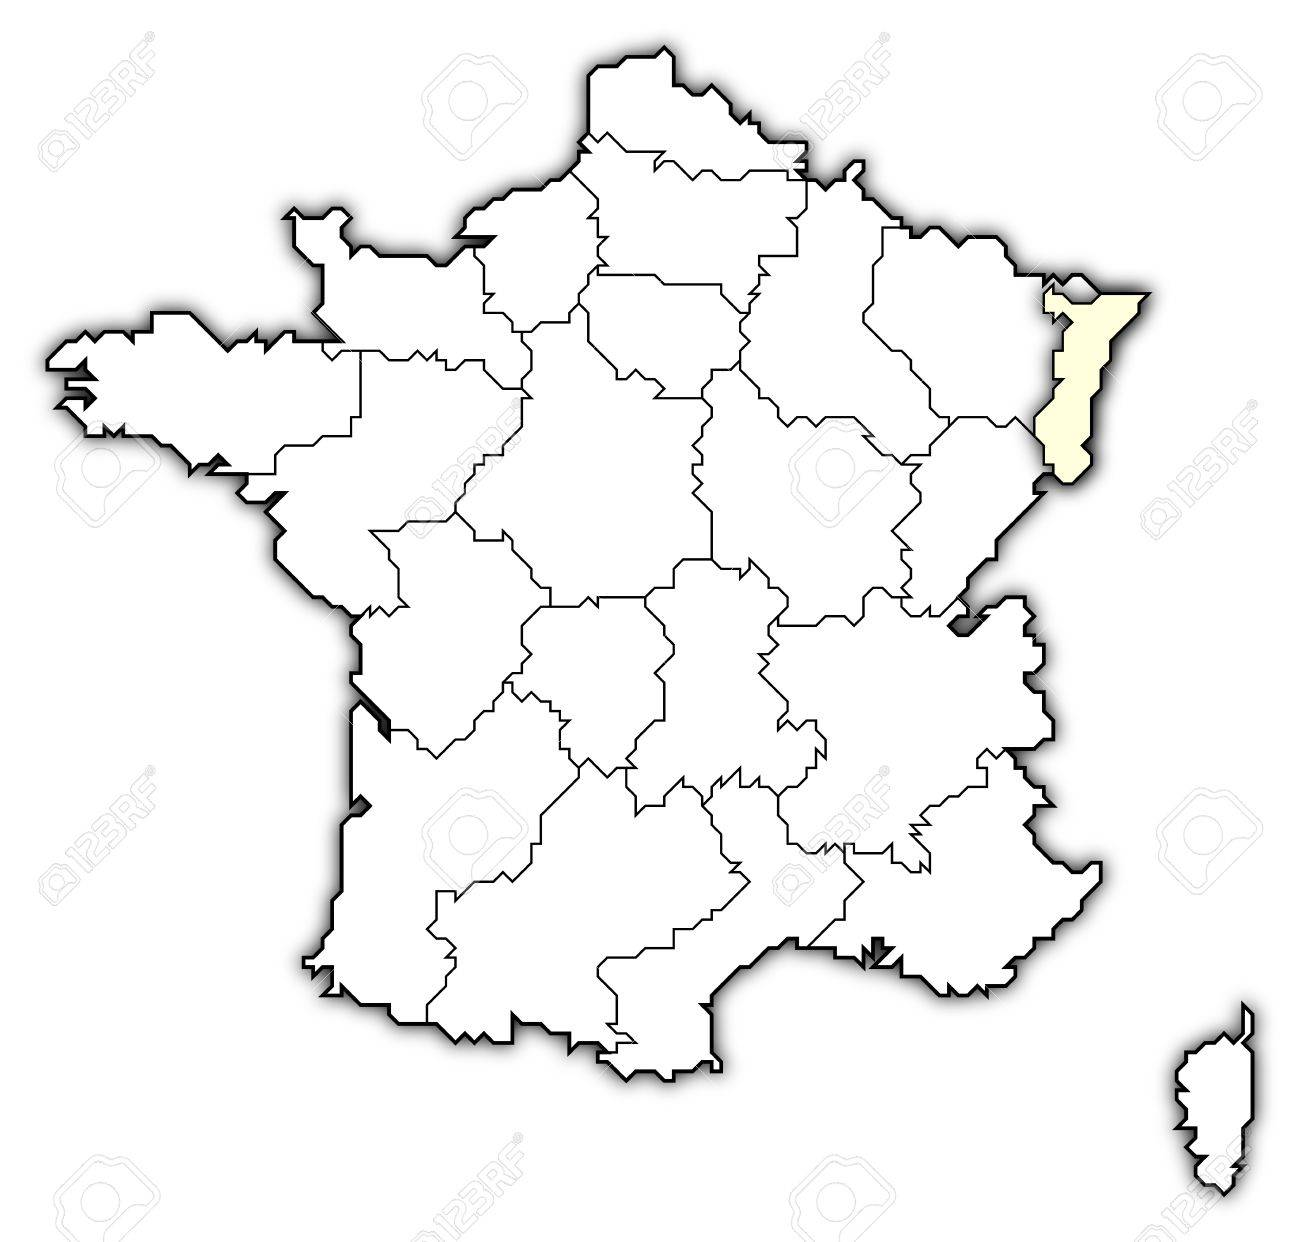 Political Map Of France With The Several Regions Where Alsace